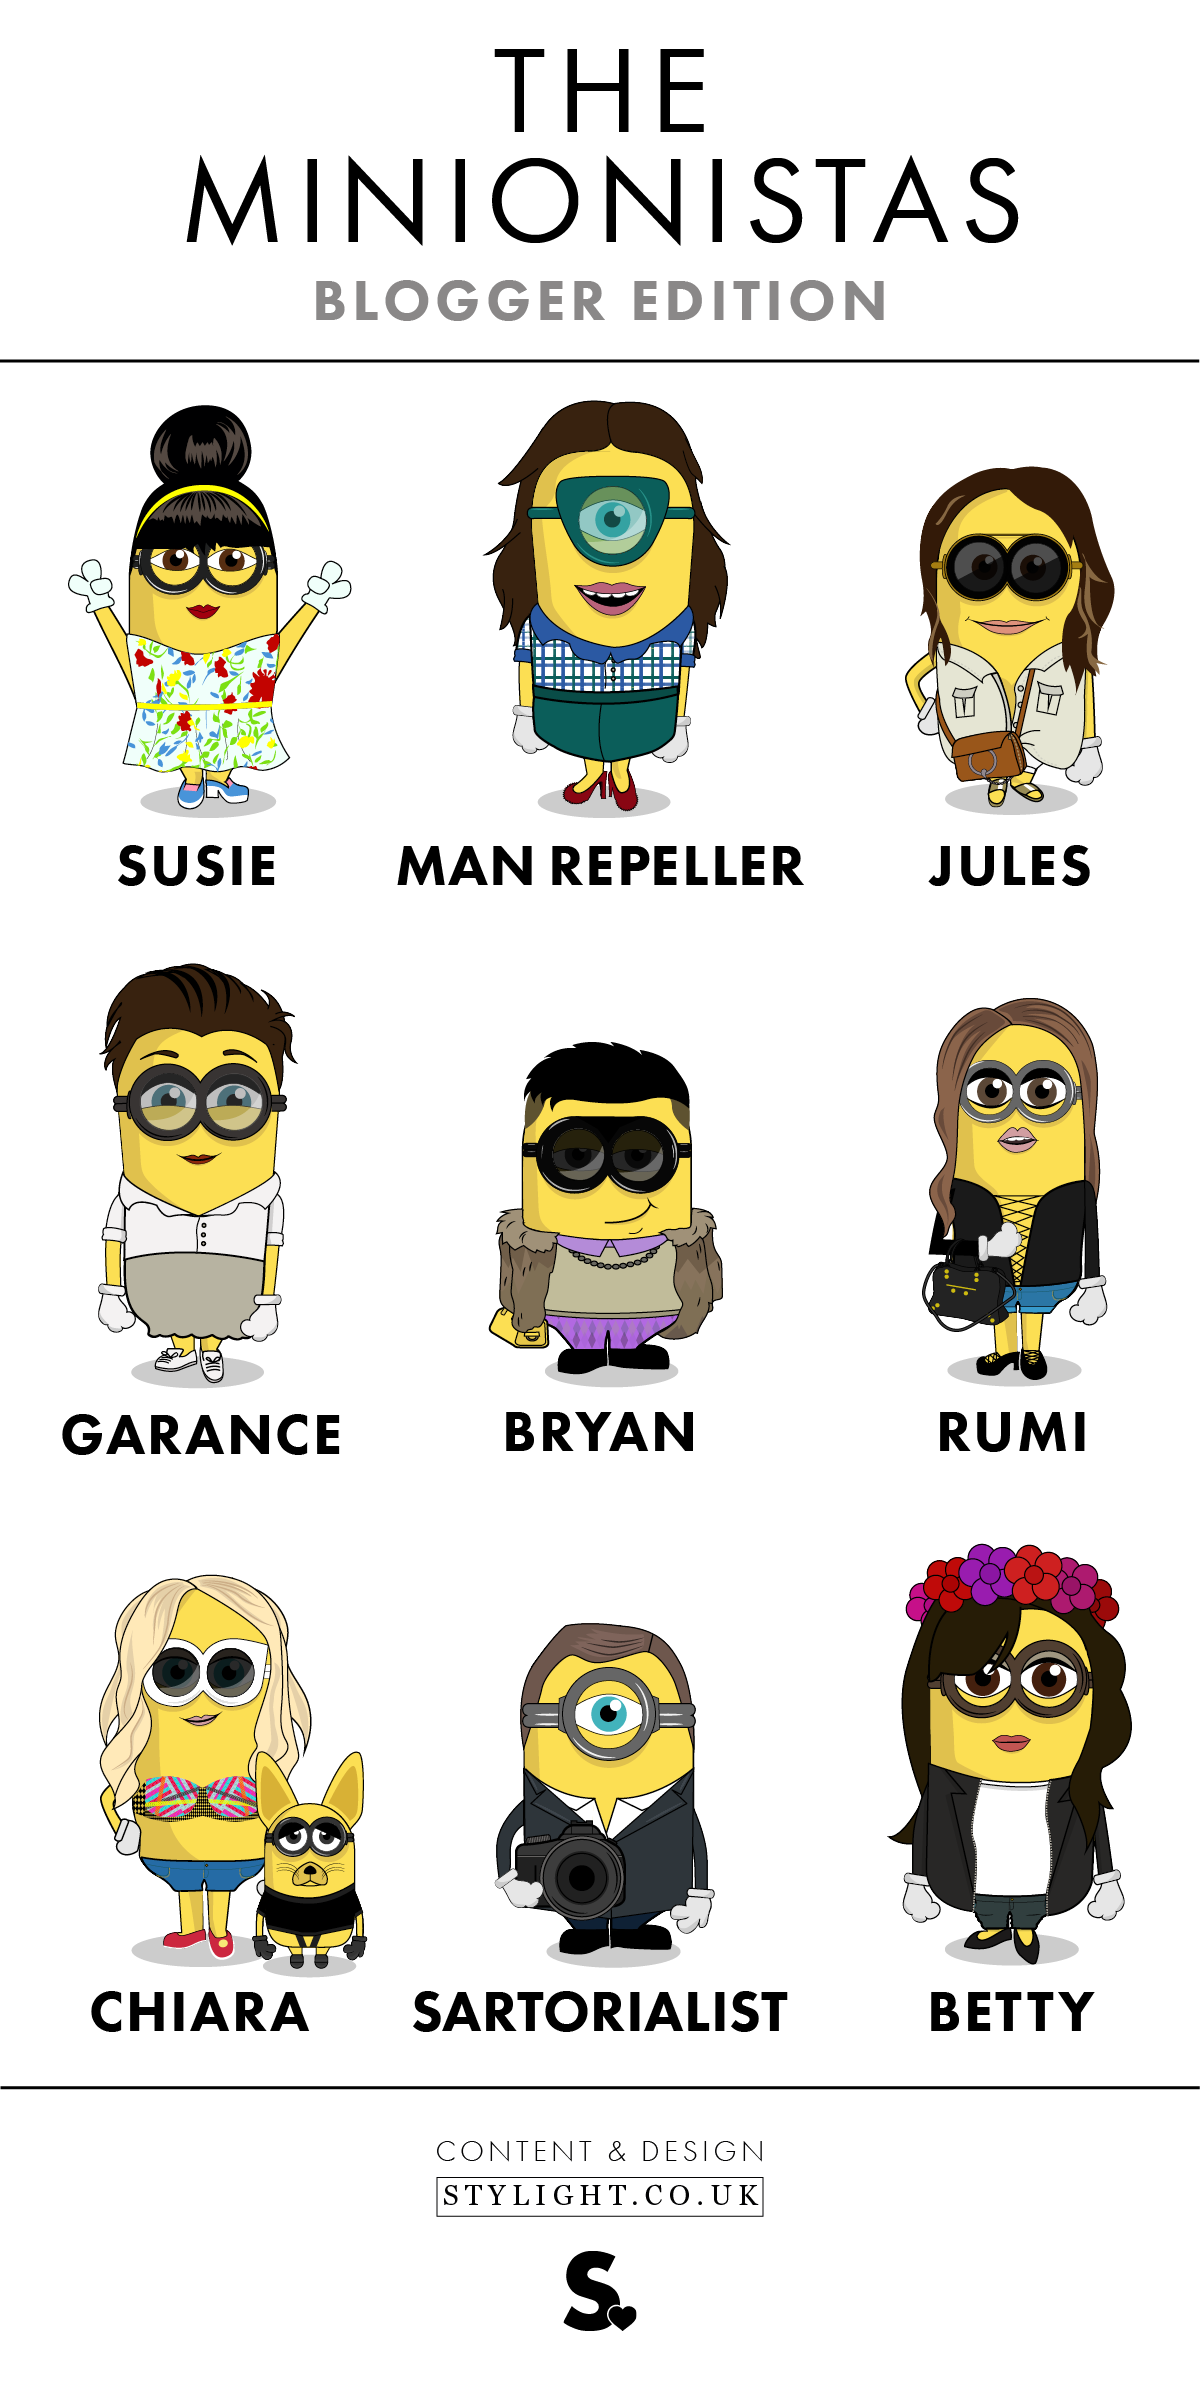 Stylight Presents The Blogger Minion edition infographic